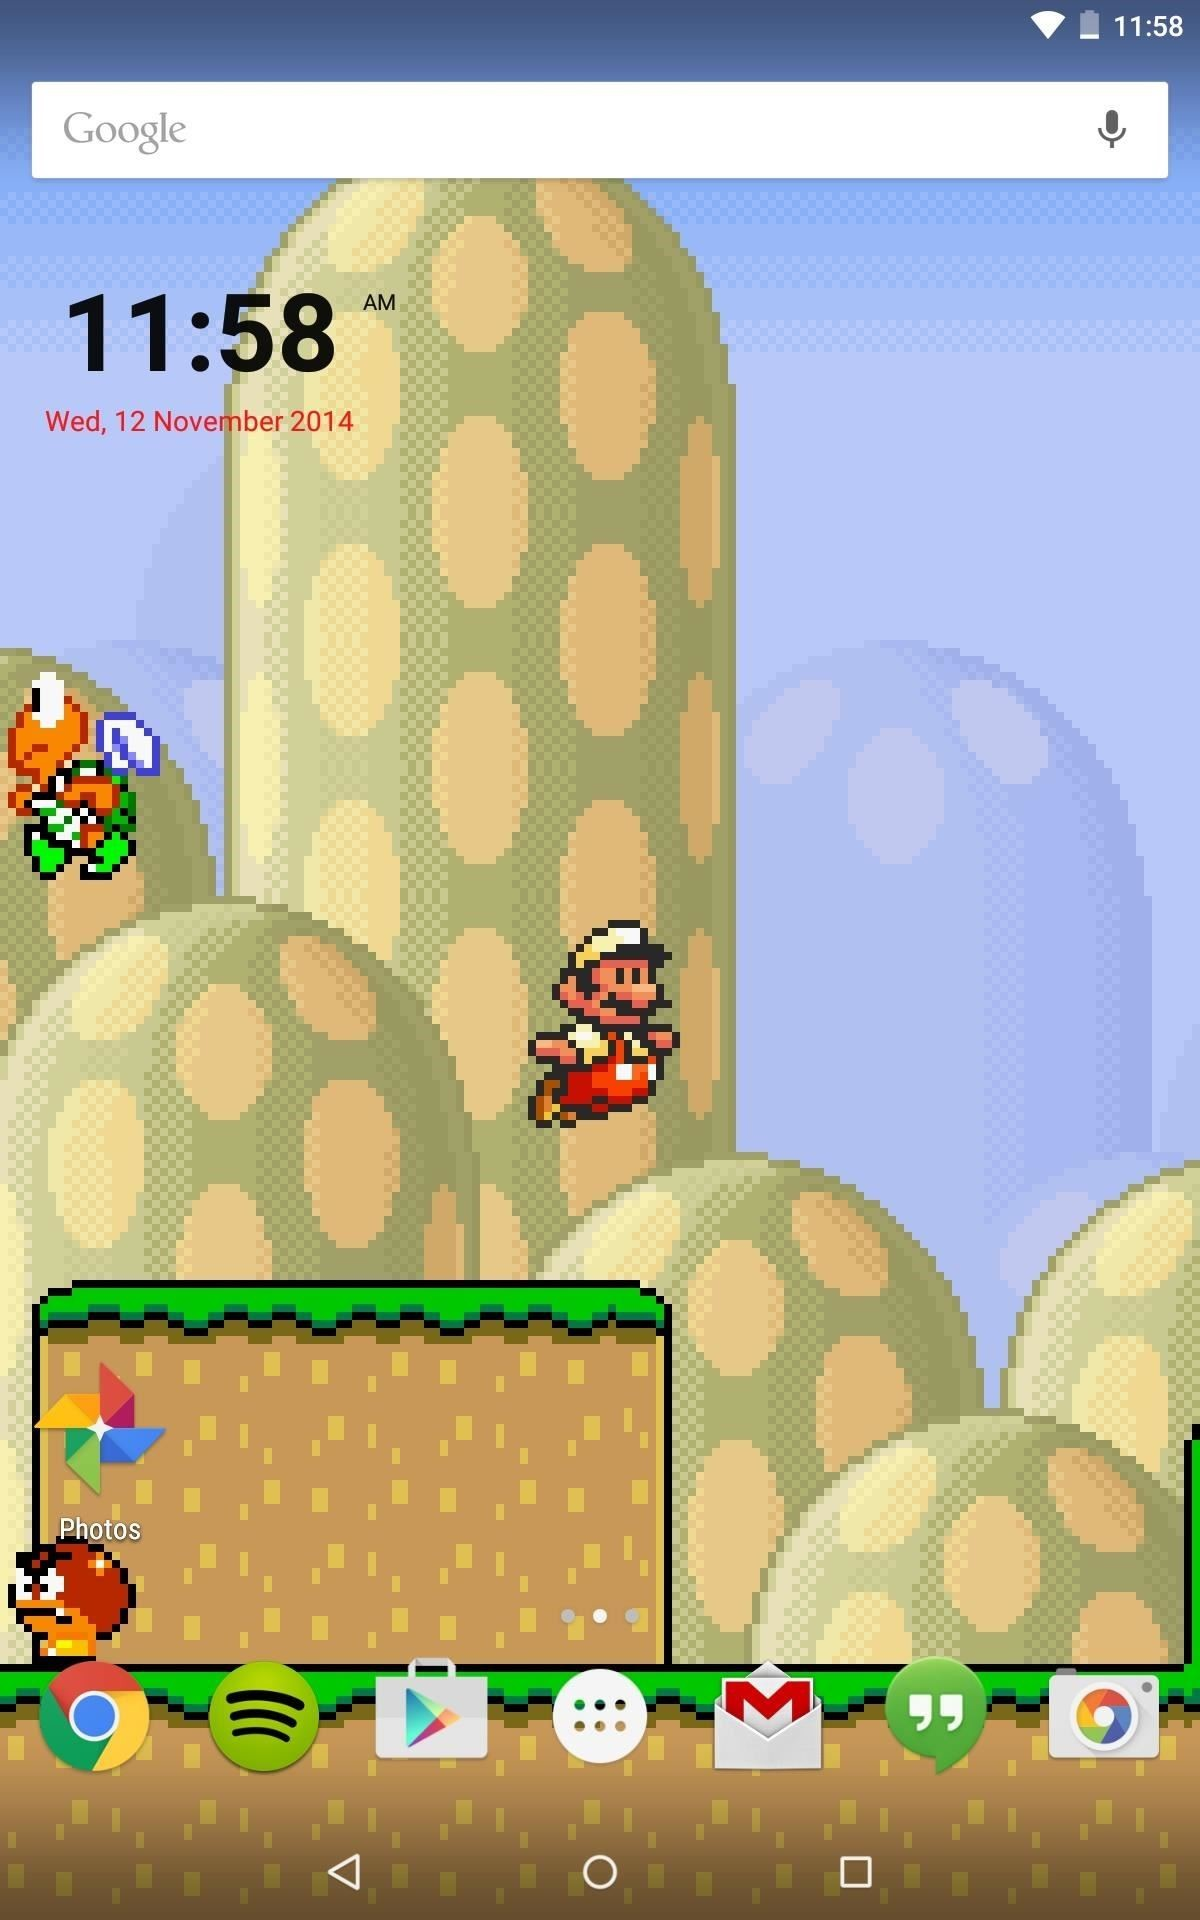 1200x1920 While this live wallpaper would be much cooler if it were actually  playable, it's still much better than staring at static image of Mario.